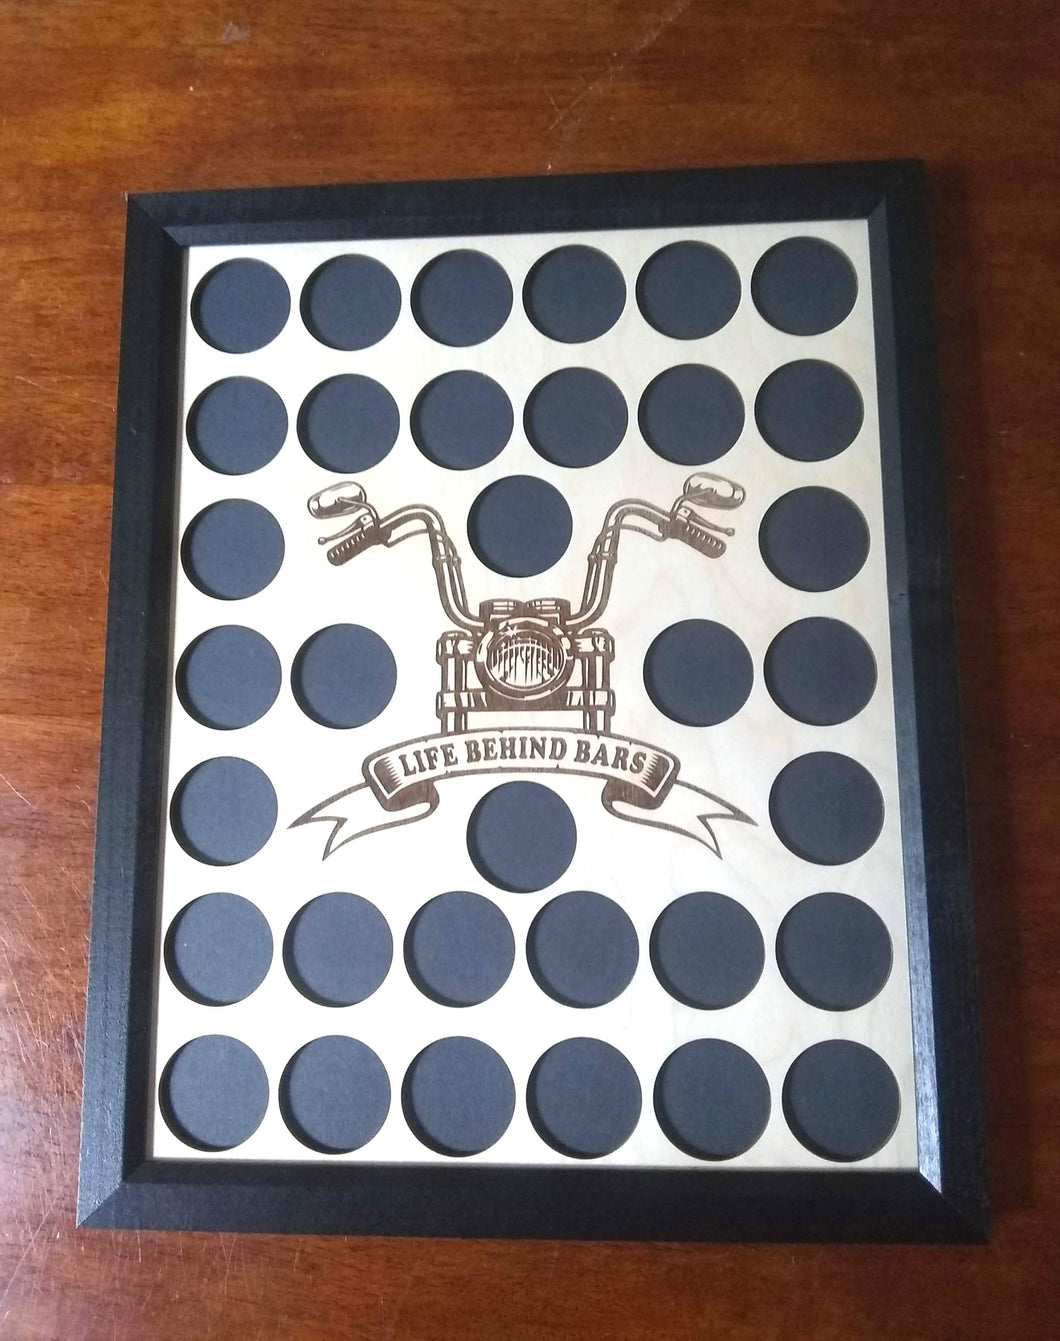 Custom Poker Chip Frame Display with Life Behind Bars Vertical Engraved Handlebars Insert For 34 Harley-Davidson or Casino chips 34-61920B